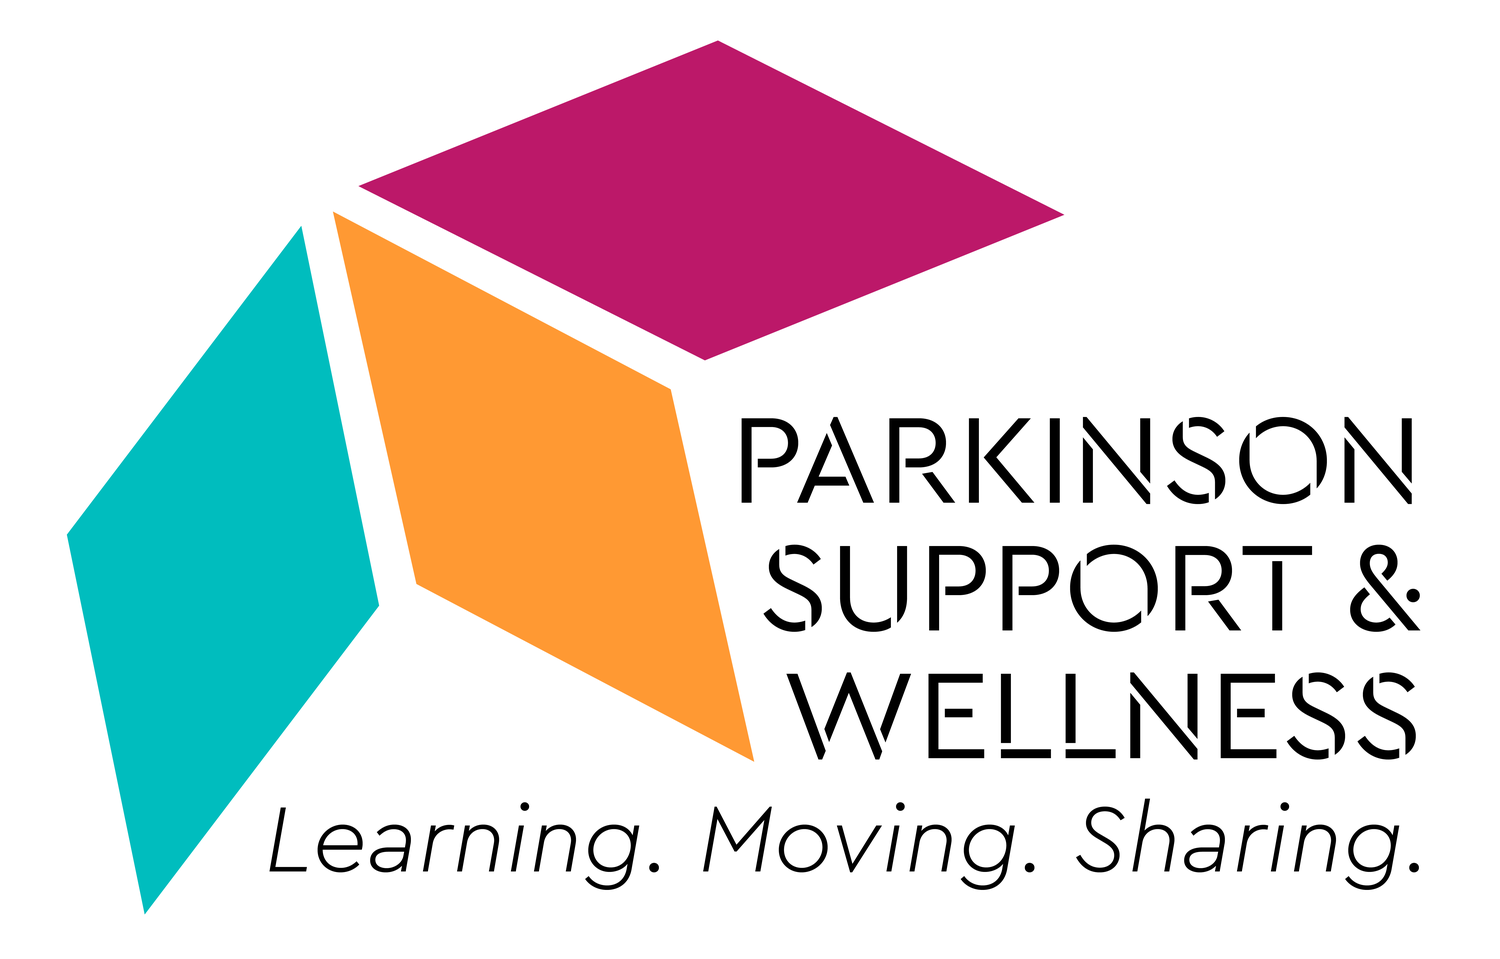 Parkinson Support and Wellness